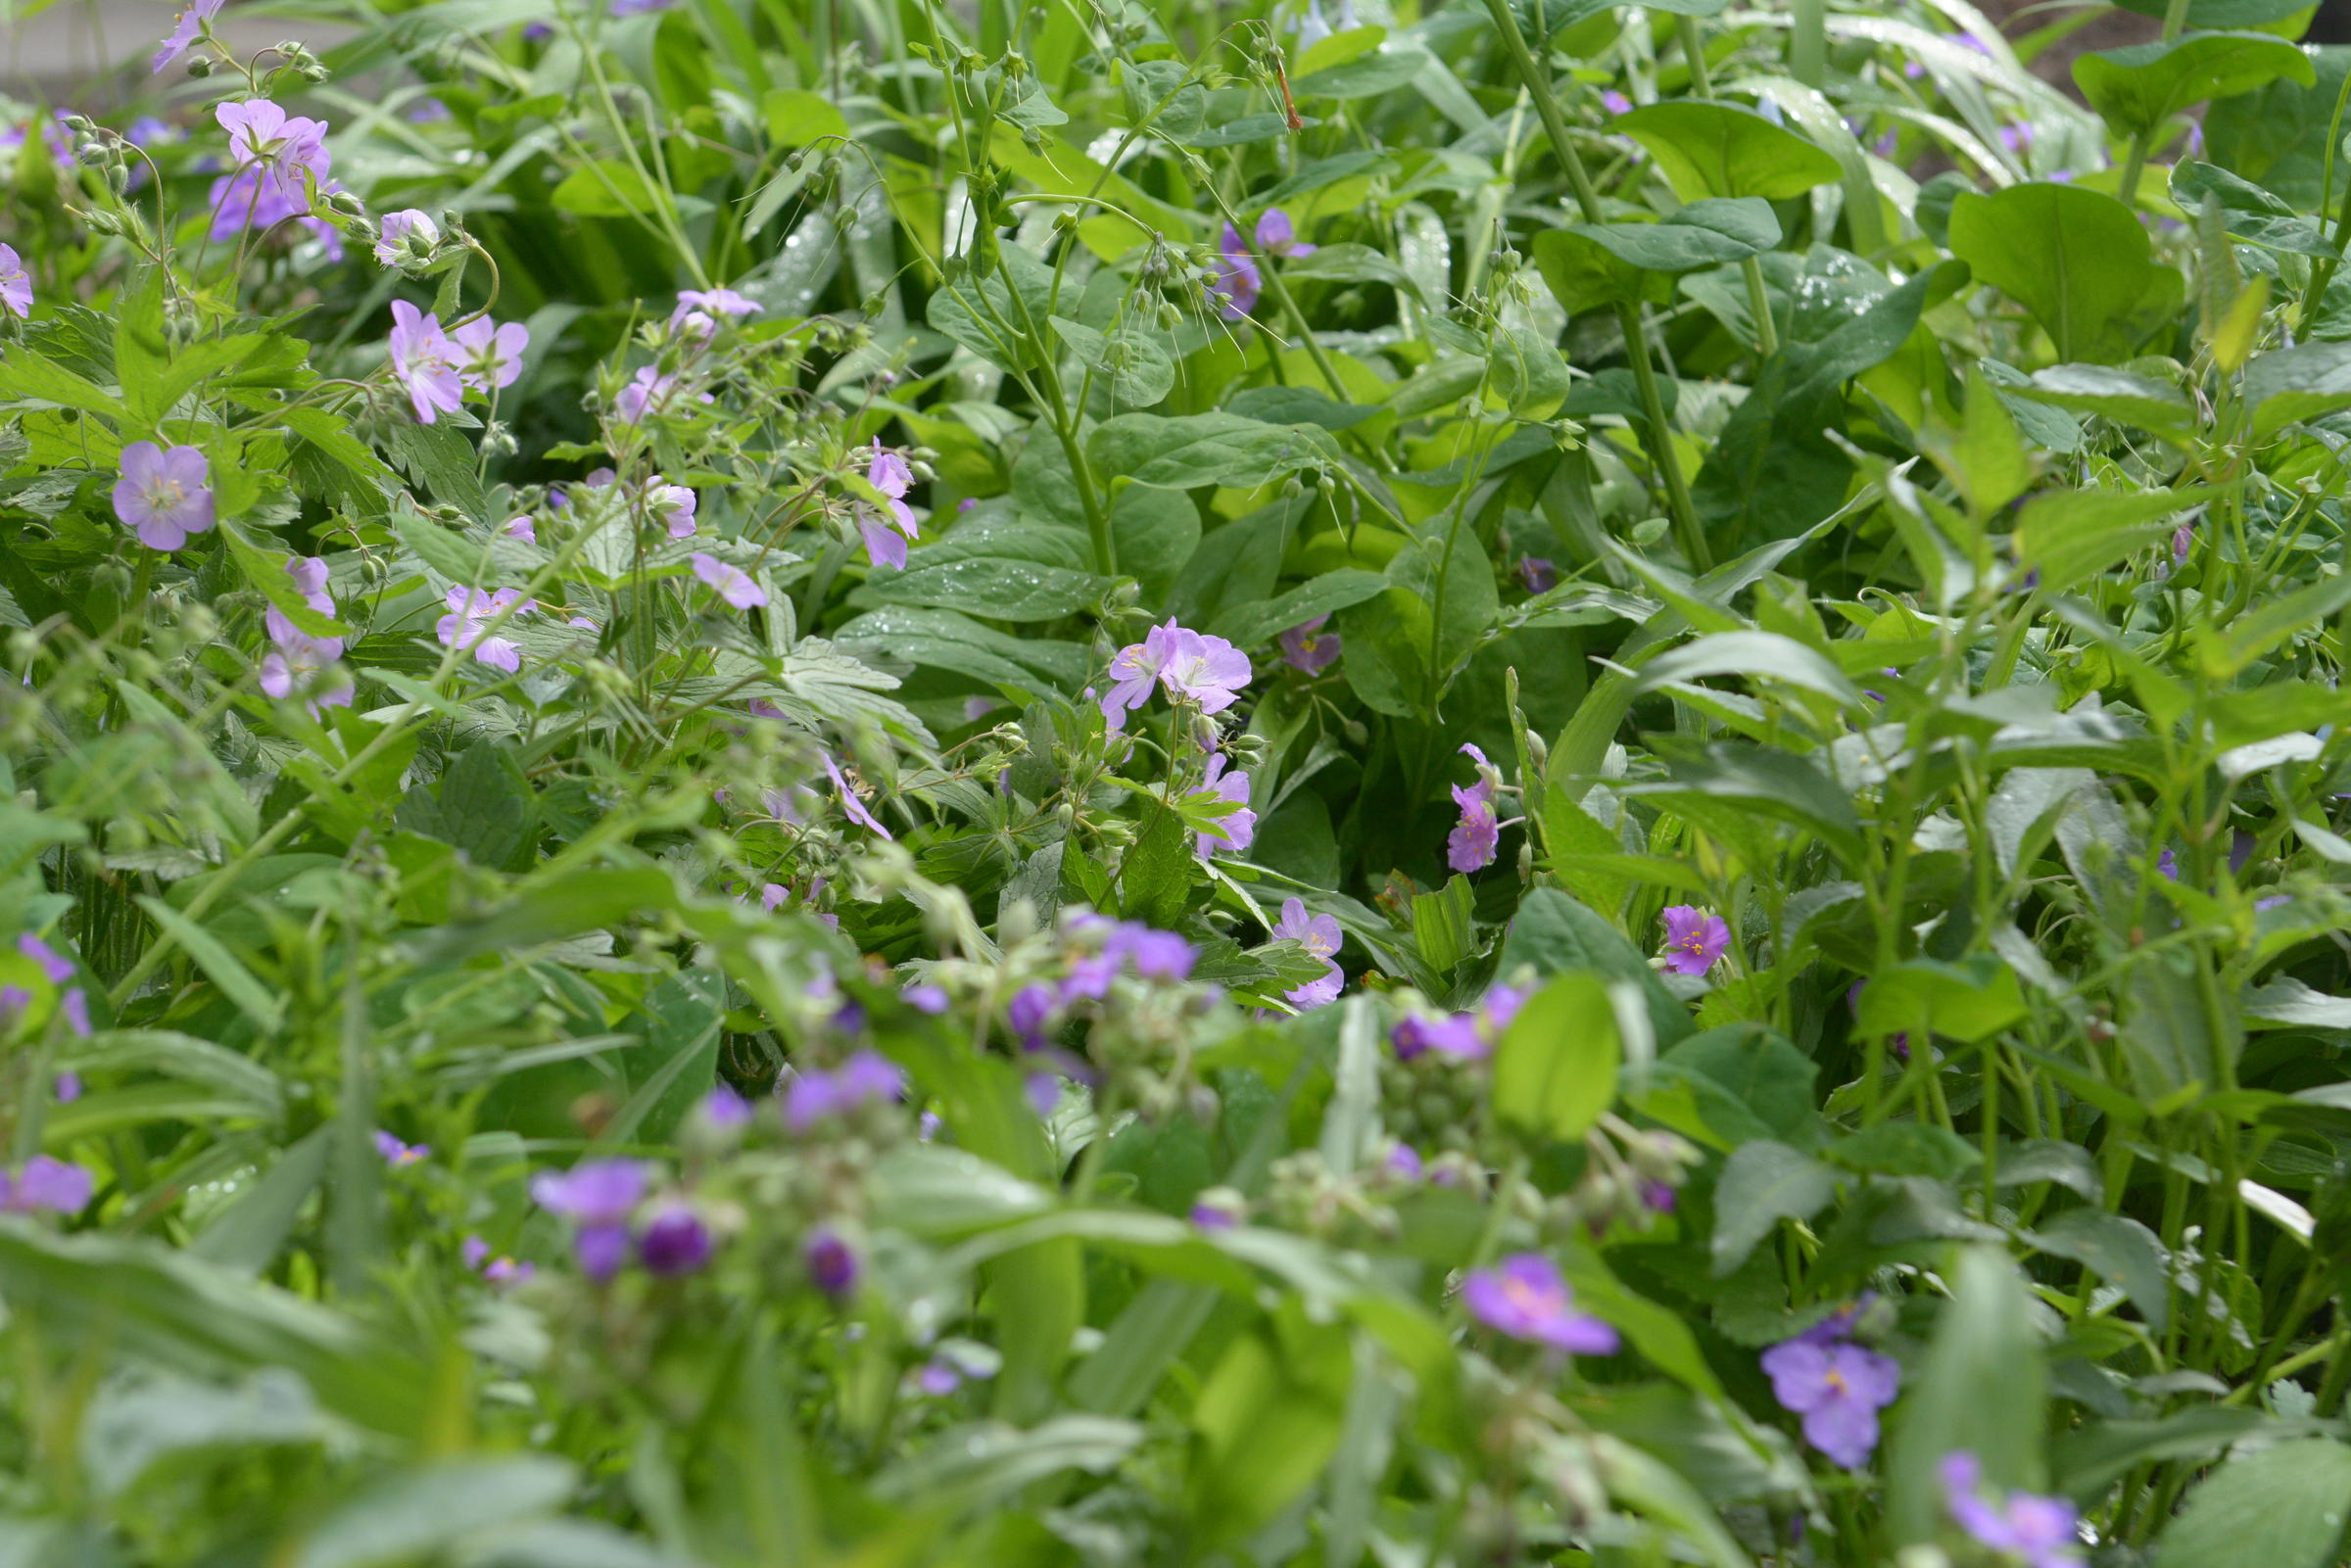 A Patch Of Wild Geranium And Woodland Spiderwort Blooms At The Missouri Wildflowers Nursery In Brazito